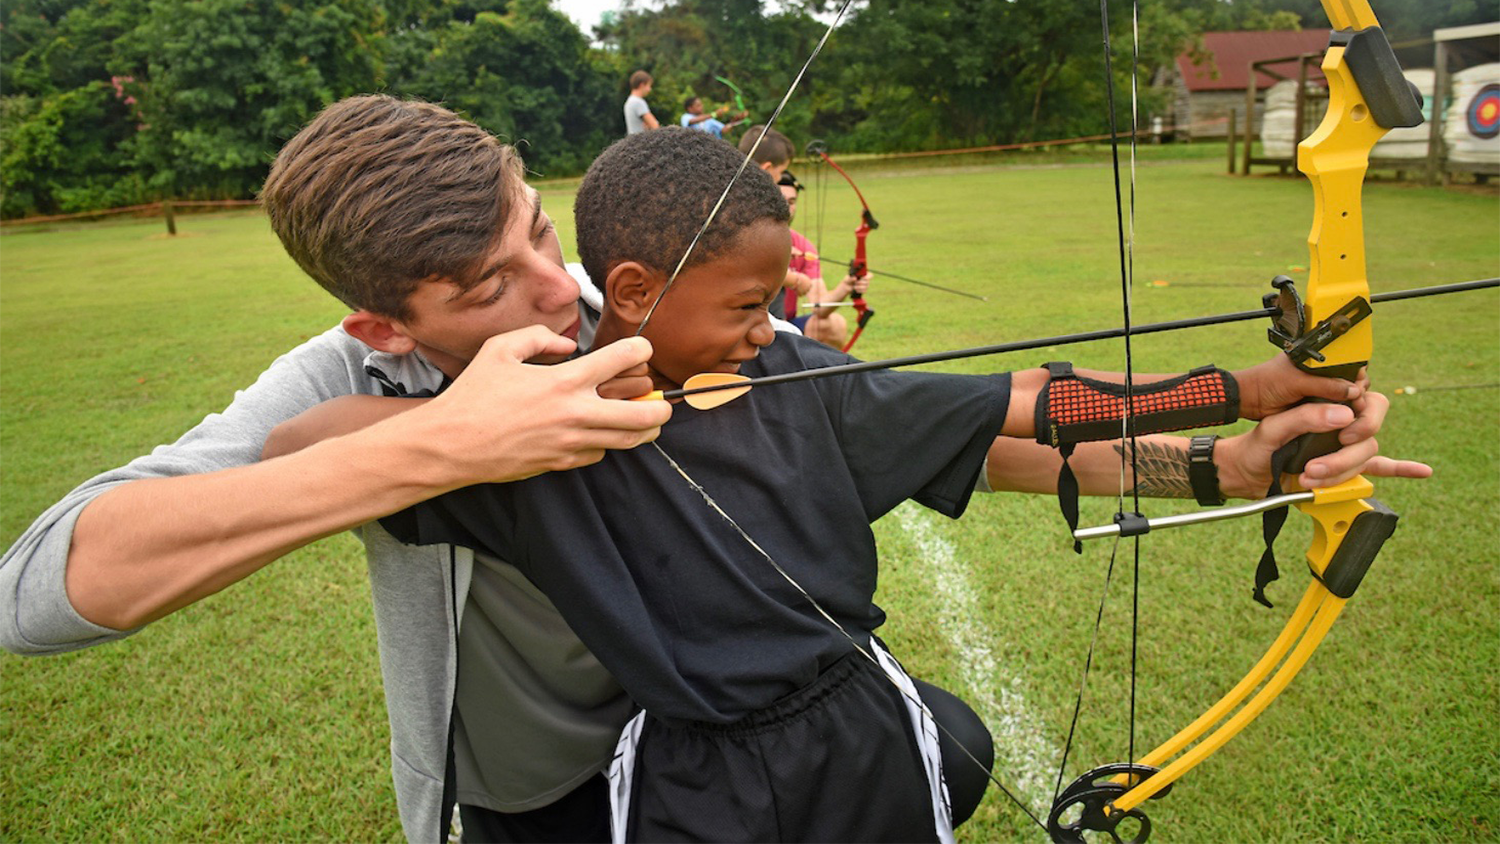 Young Caucasian male helping young African American boy with archery